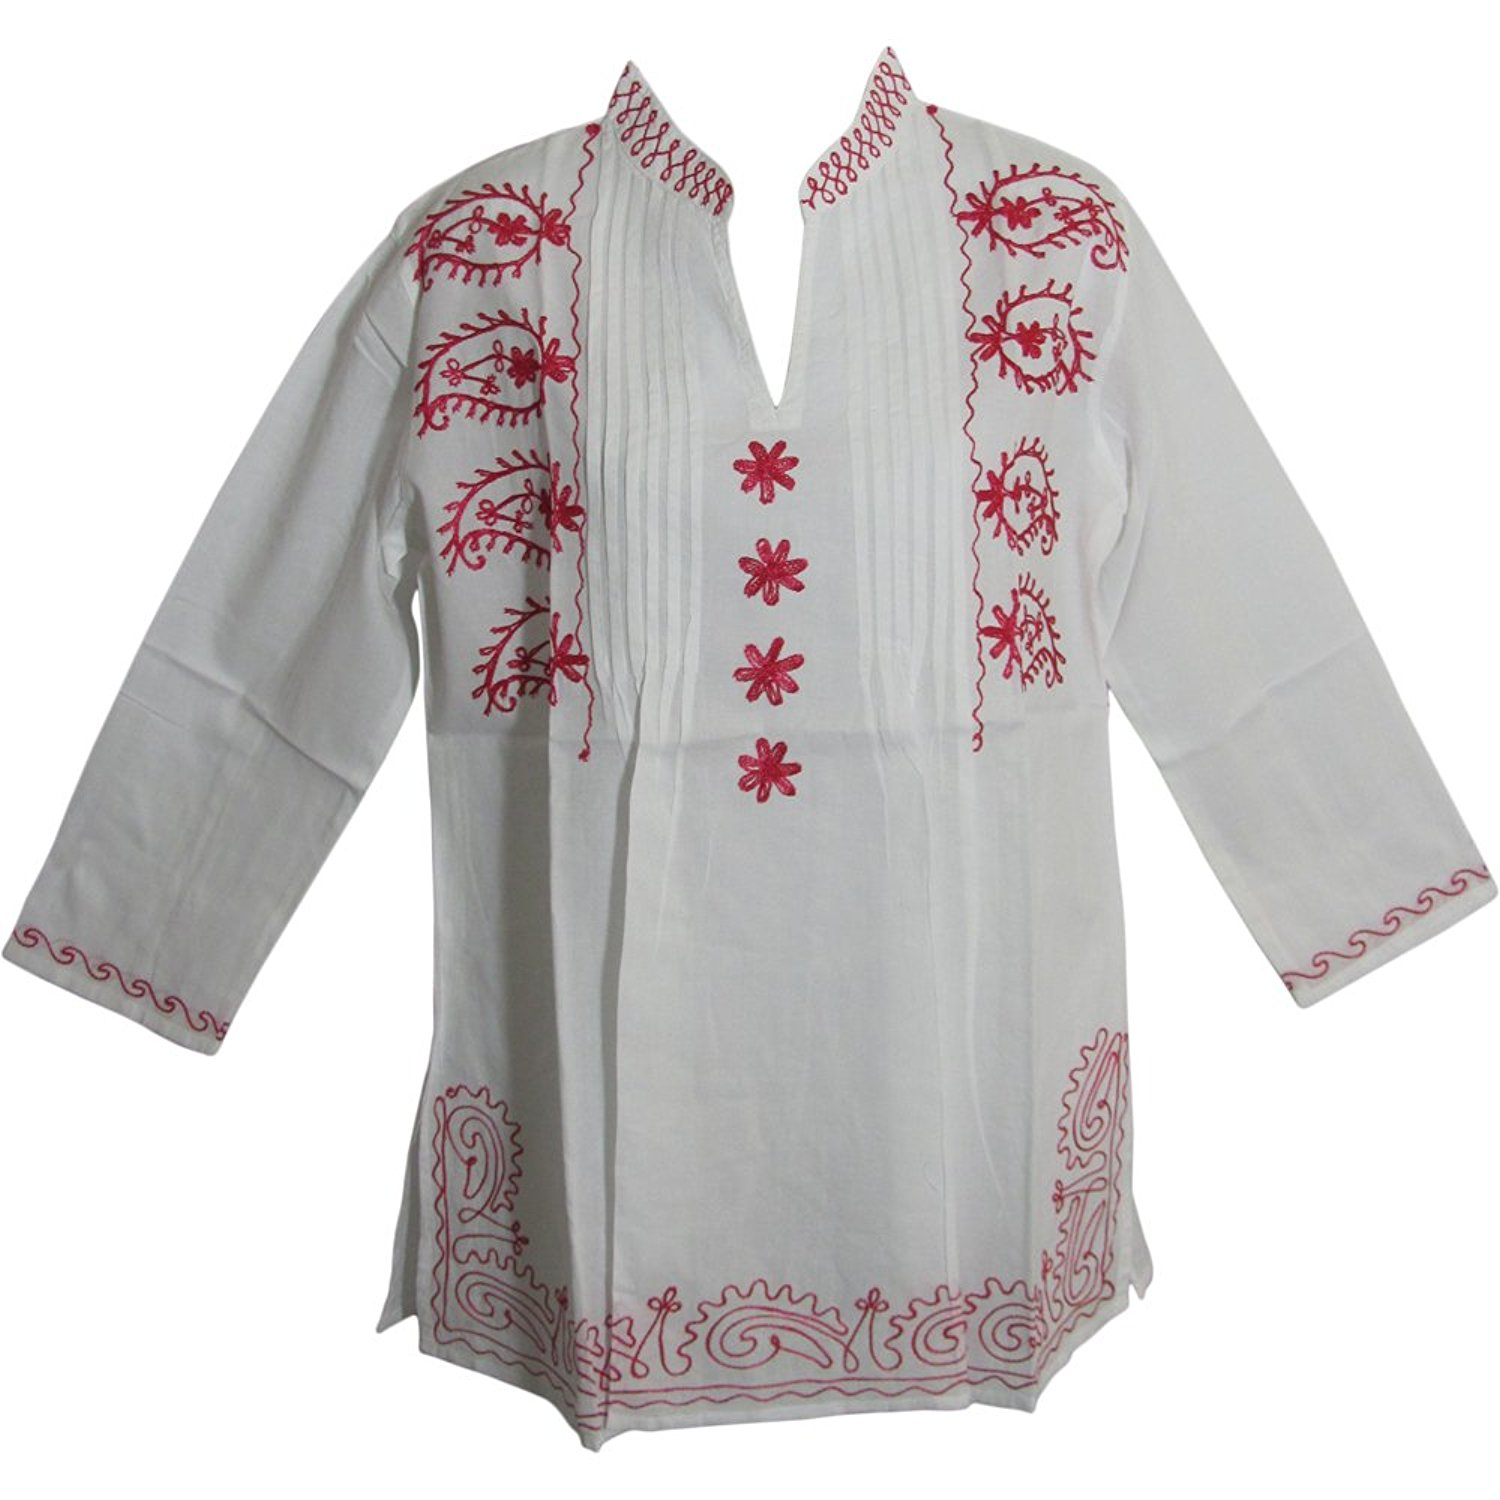 d3b14a2977242 Get Quotations · Yoga Trendz Indian Mandarin Collar Paisley Embroidered  White Cotton Peasant Tunic Blouse